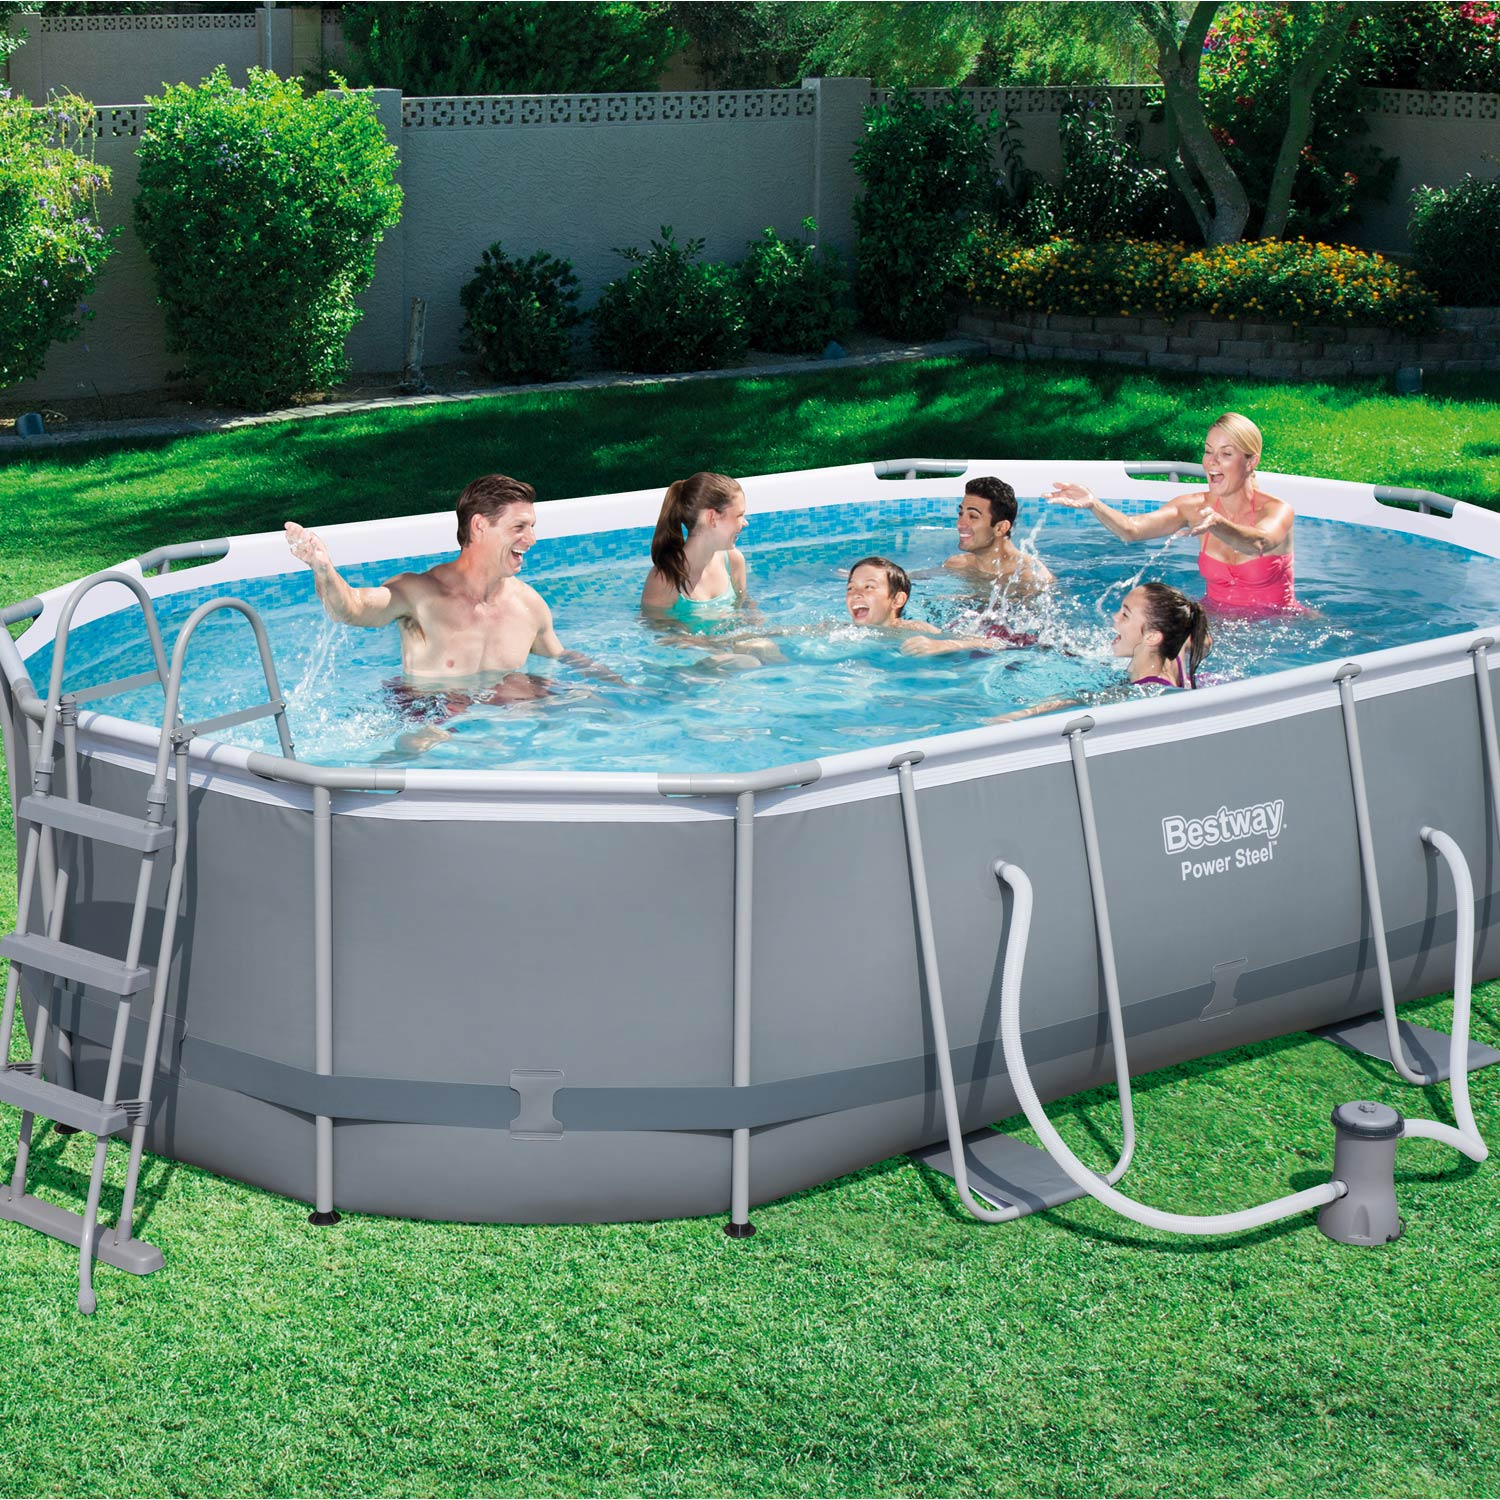 Piscine hors sol autoportante tubulaire bestway l x for Piscine hors sol couverte